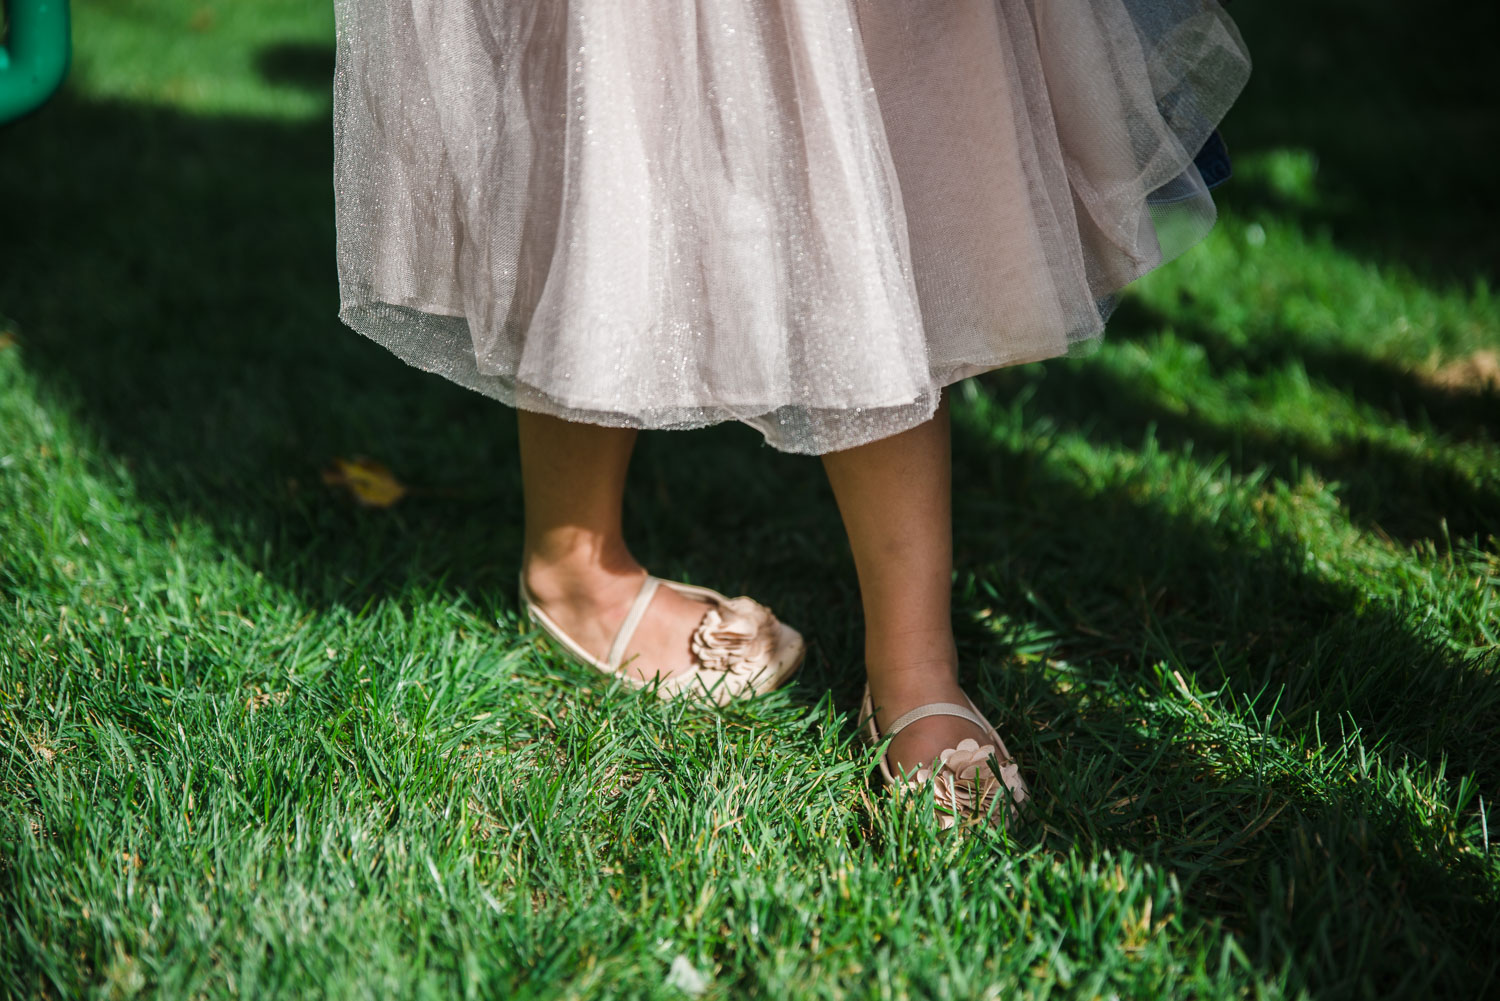 Little girl's pink skirt and shoes.